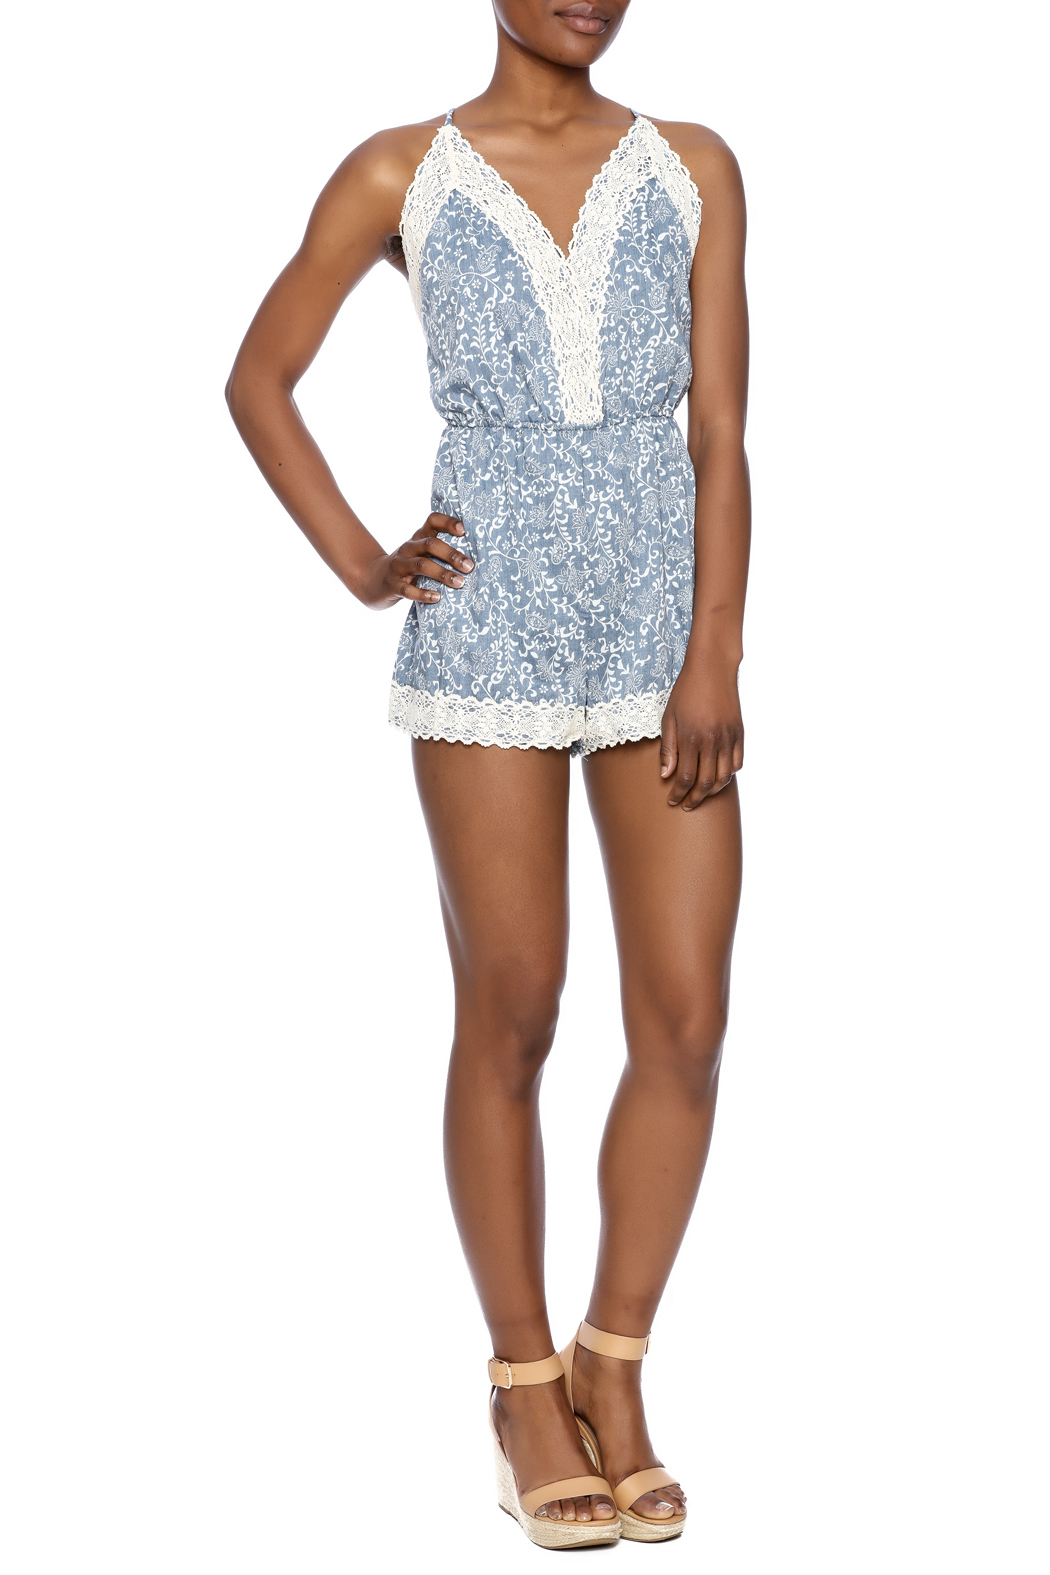 Wish Collection Denim And Lace Romper From Omaha By Jade Love U2014 Shoptiques